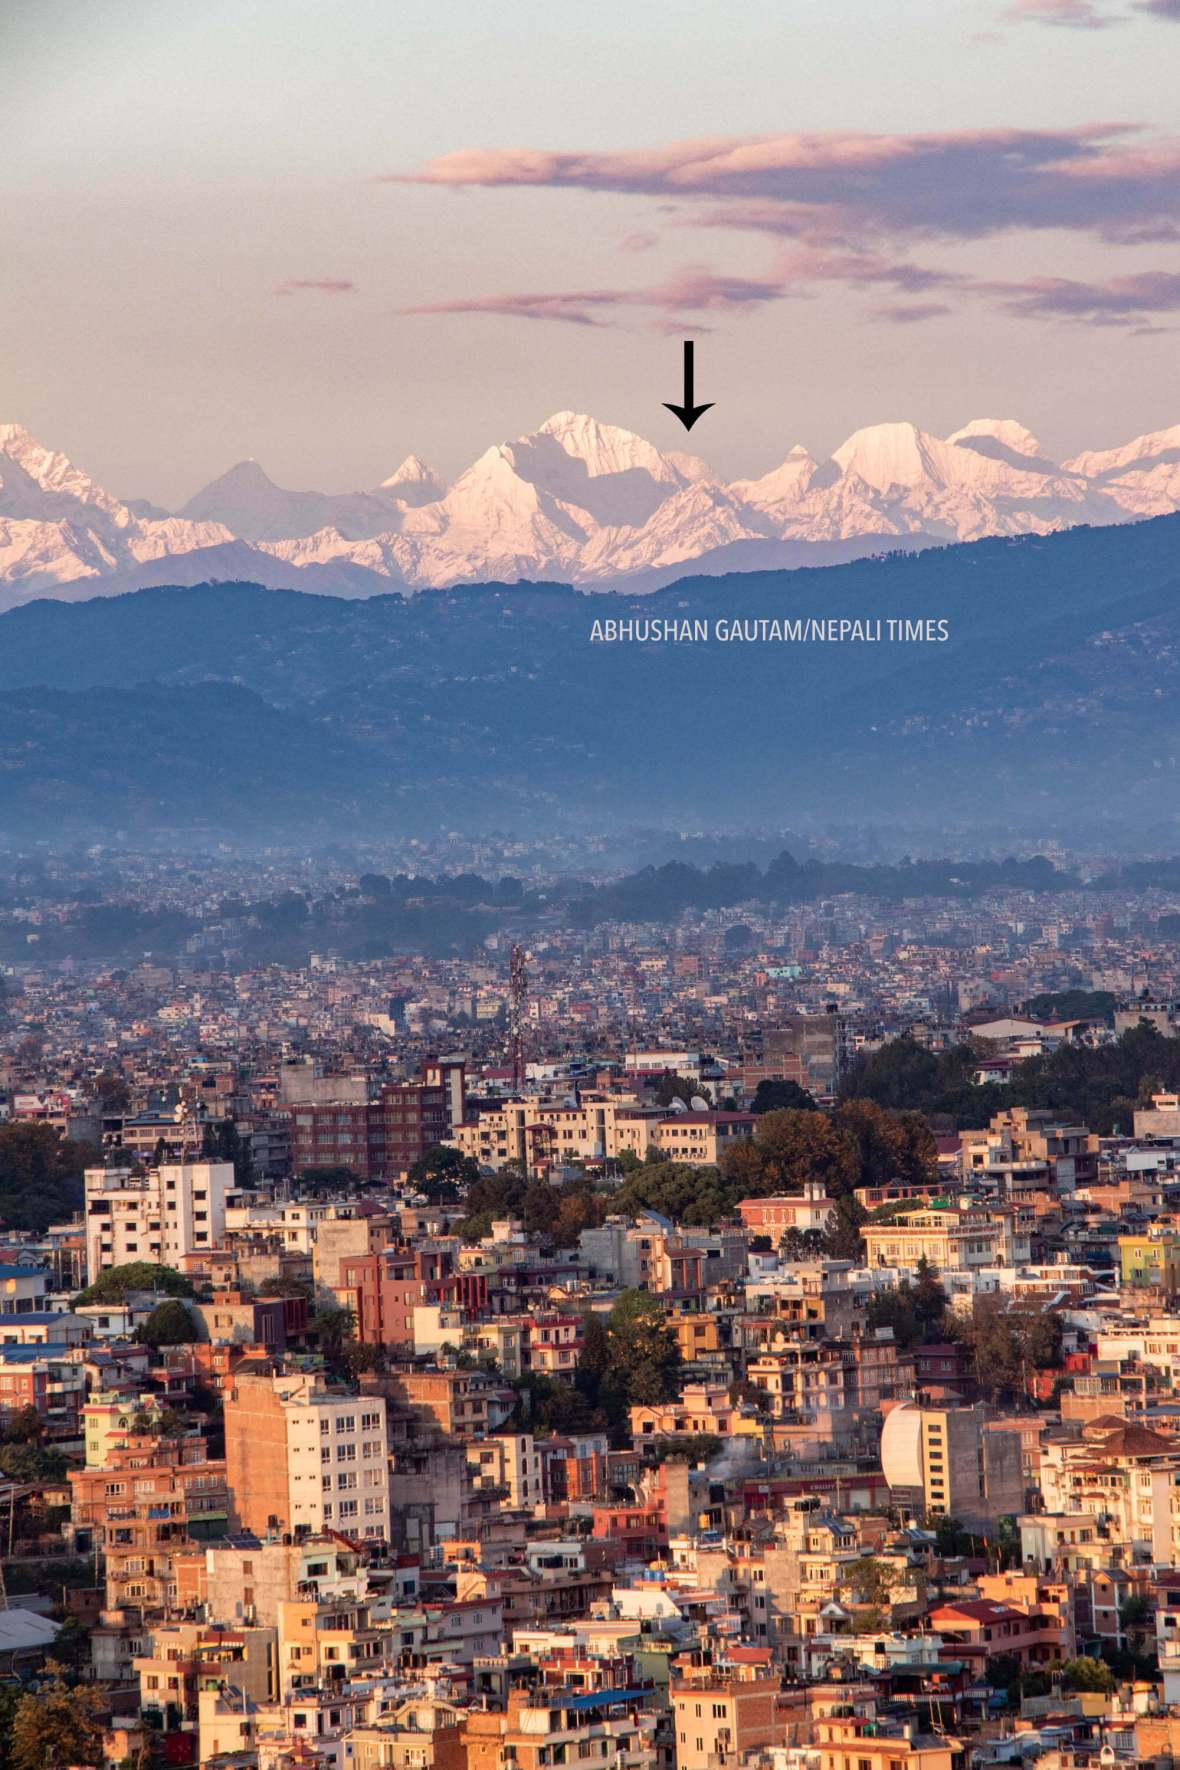 Mt-Everest-seen-from-Kathamndu-during-the-COVID-19-lockdown-NT-2